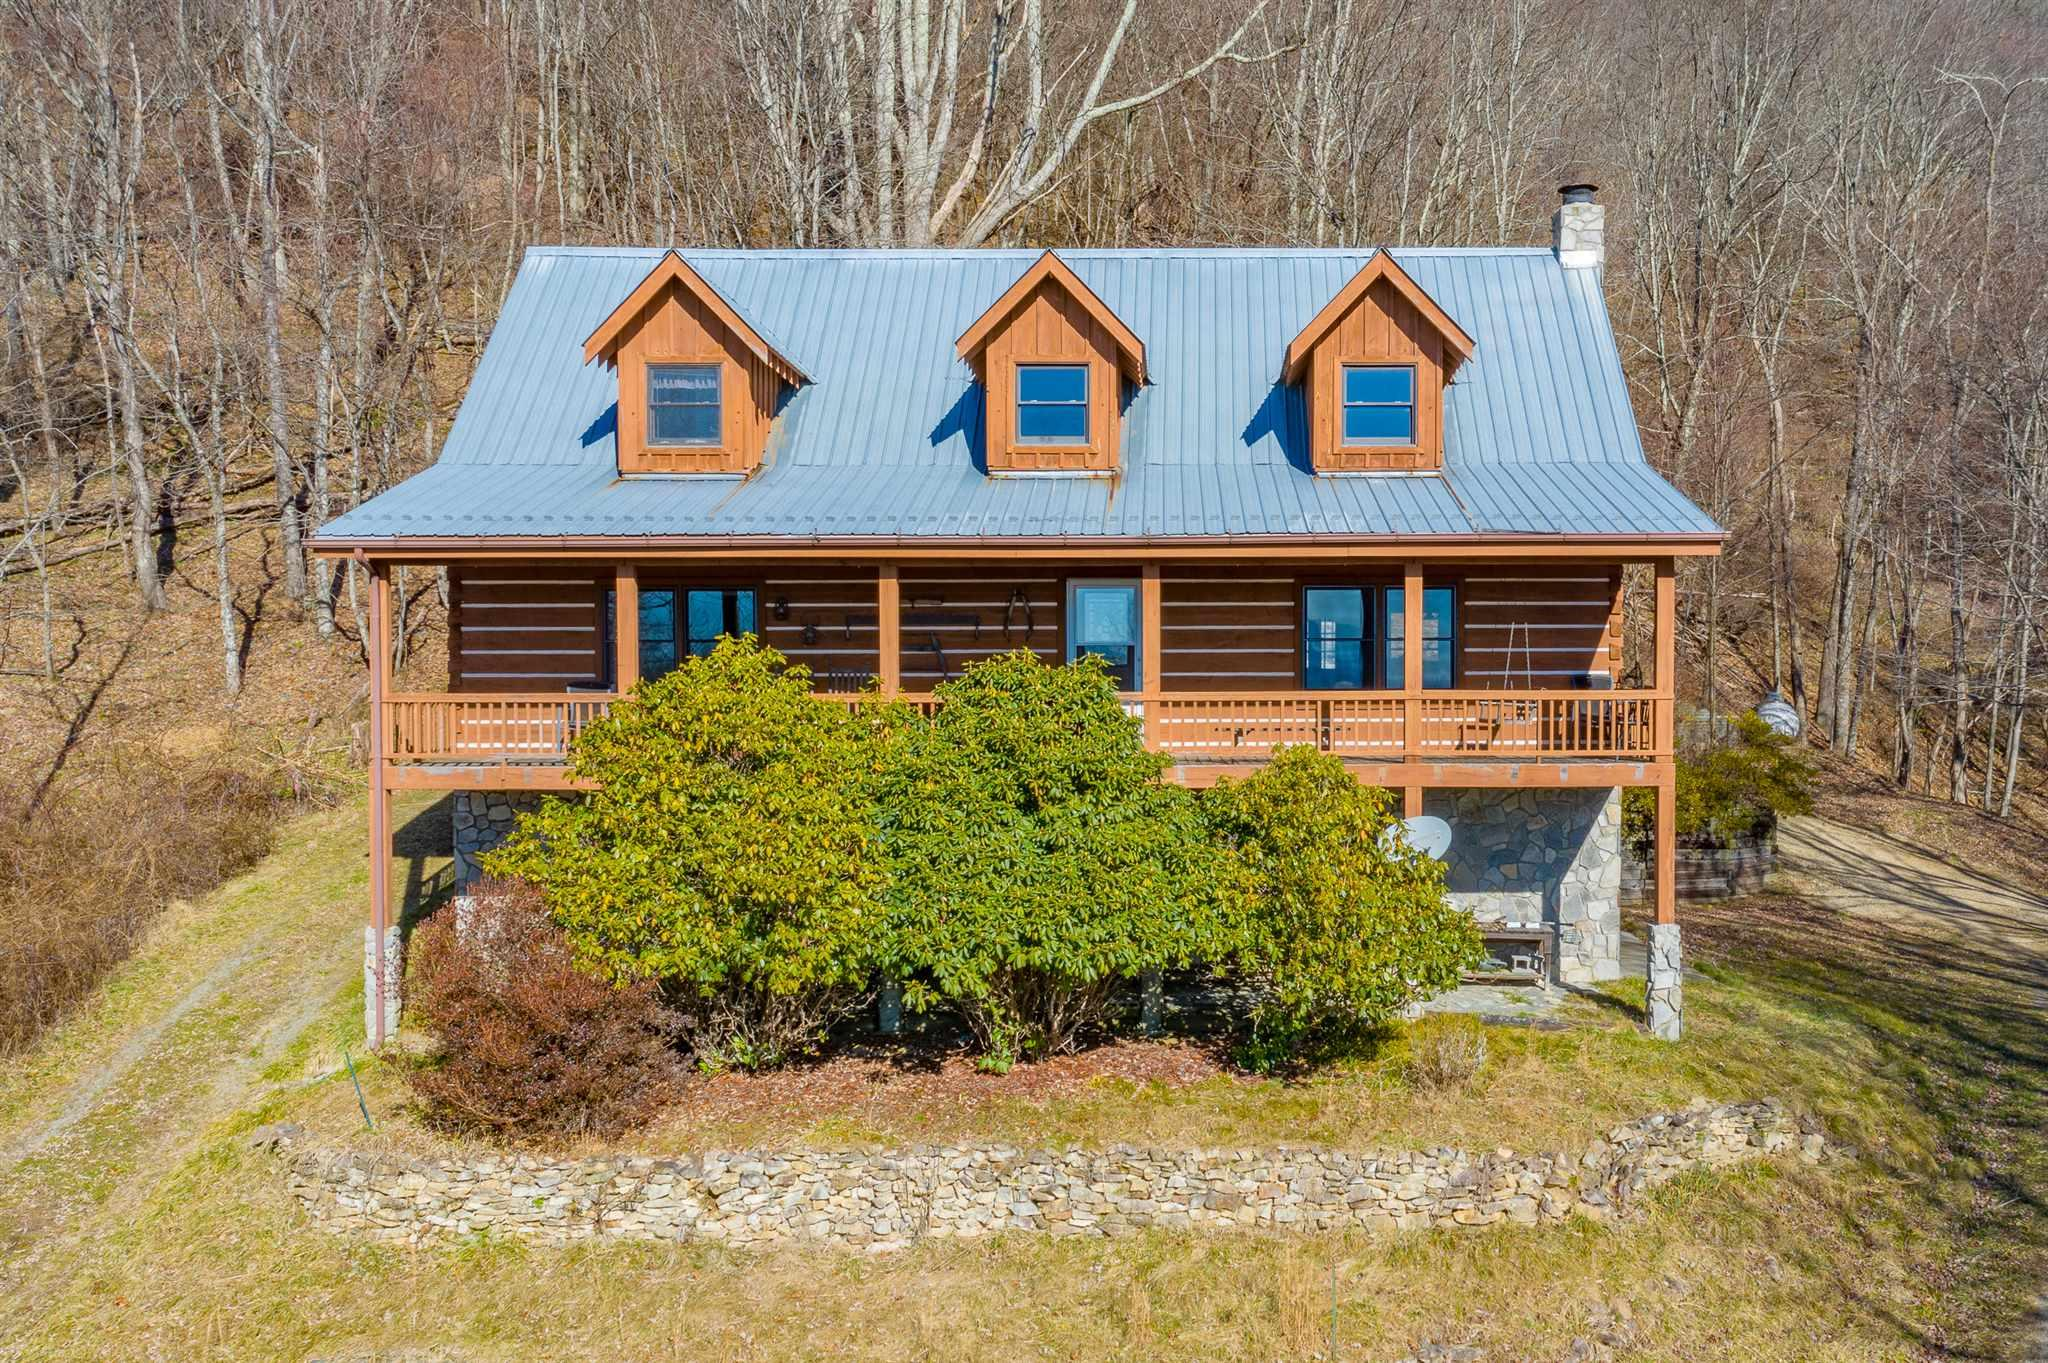 If you've been searching for a secluded log home in the mountains with some land and a view, then you have finally found it! The peace and quiet on the 27+ acres up here is like no other. You have gorgeous long range mountain views year round here. You'll want to spend all day on that front deck. Of course, it is hard to have land and a view in the mountains without doing a little climbing, but don't worry, your car will make it just fine. You have an immaculate 3 bed 3.5 bath home with 2344 SQFT. There is a gorgeous open floor plan with a tall cathedral ceiling. There's a central heating system, a very convenient circle drive that goes around the house, and a 2 car garage that pulls into the basement. Currently, the basement has been used as a shop, but could easily be converted into more living space if you should desire. There is a full bath on each level, to include the basement, plus a half bath on the main level for guest's convenience. You also have a large walk-through pantry.